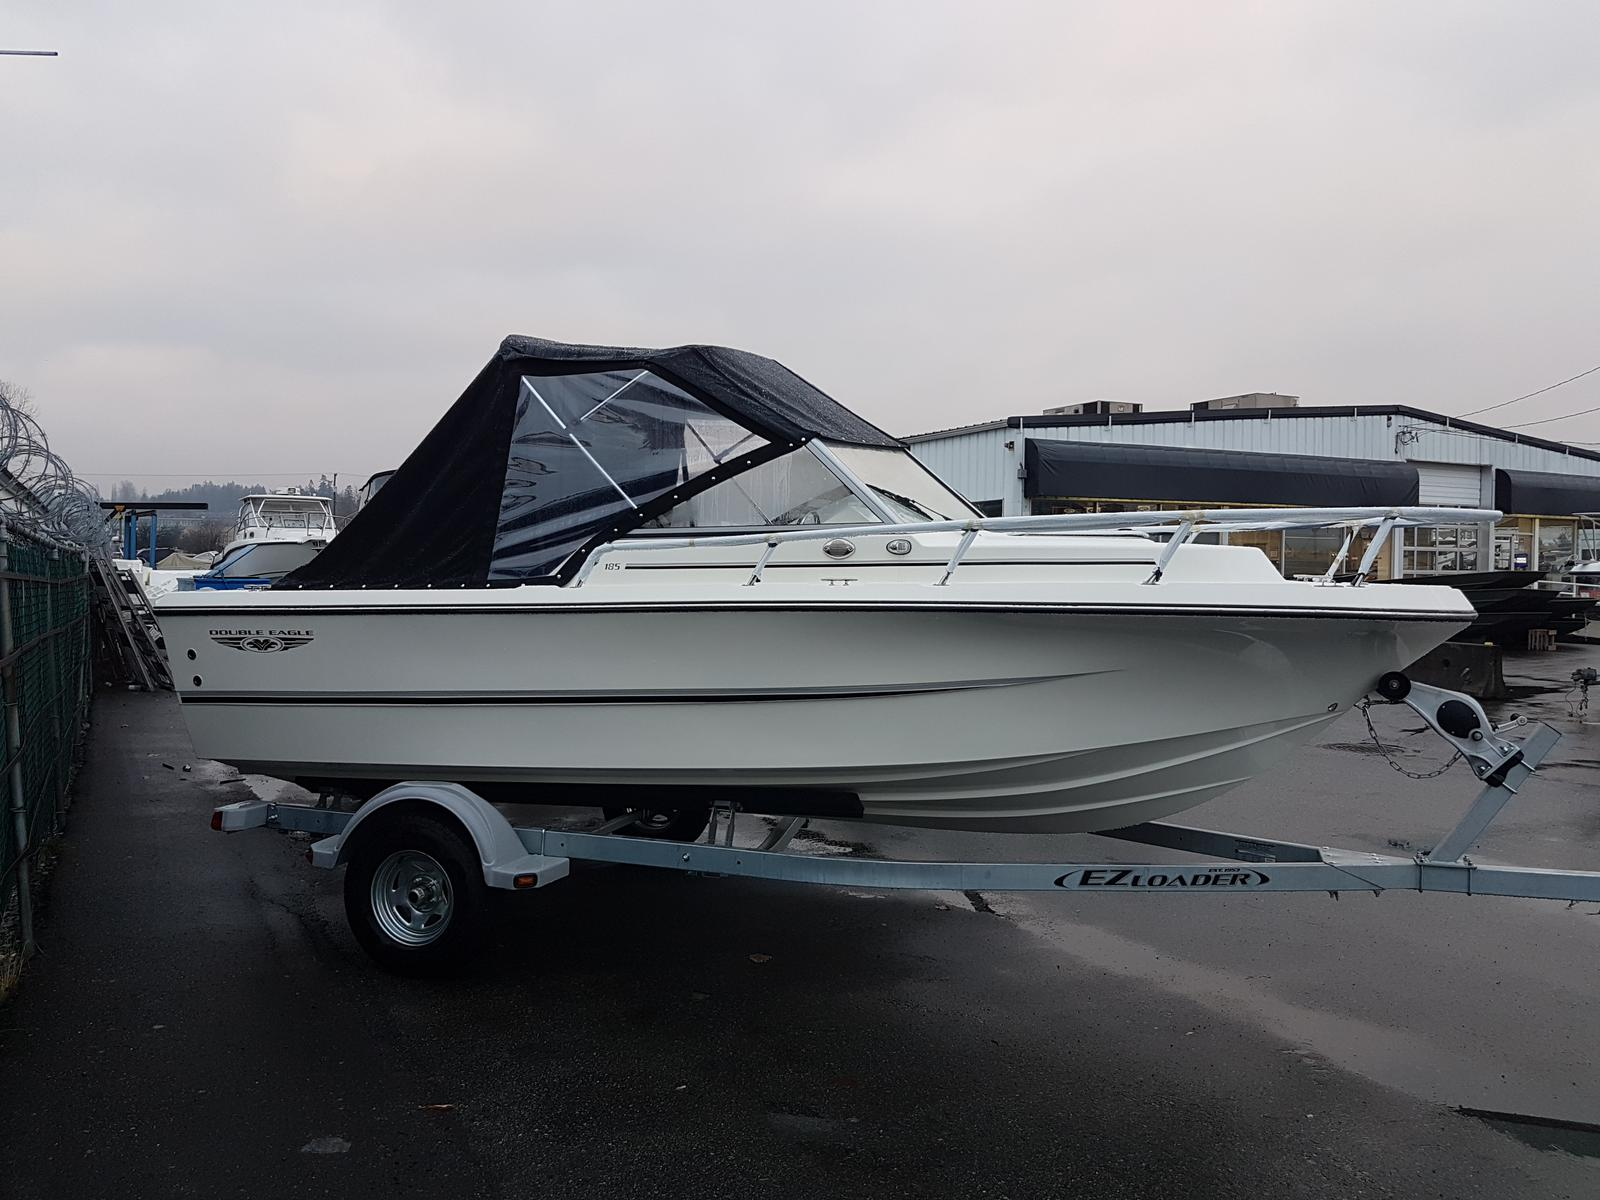 2018 Double Eagle 185 Cuddy Cabin For Sale In Langley Bc Marine As Well Boat Trailers On Trailer Wiring 3